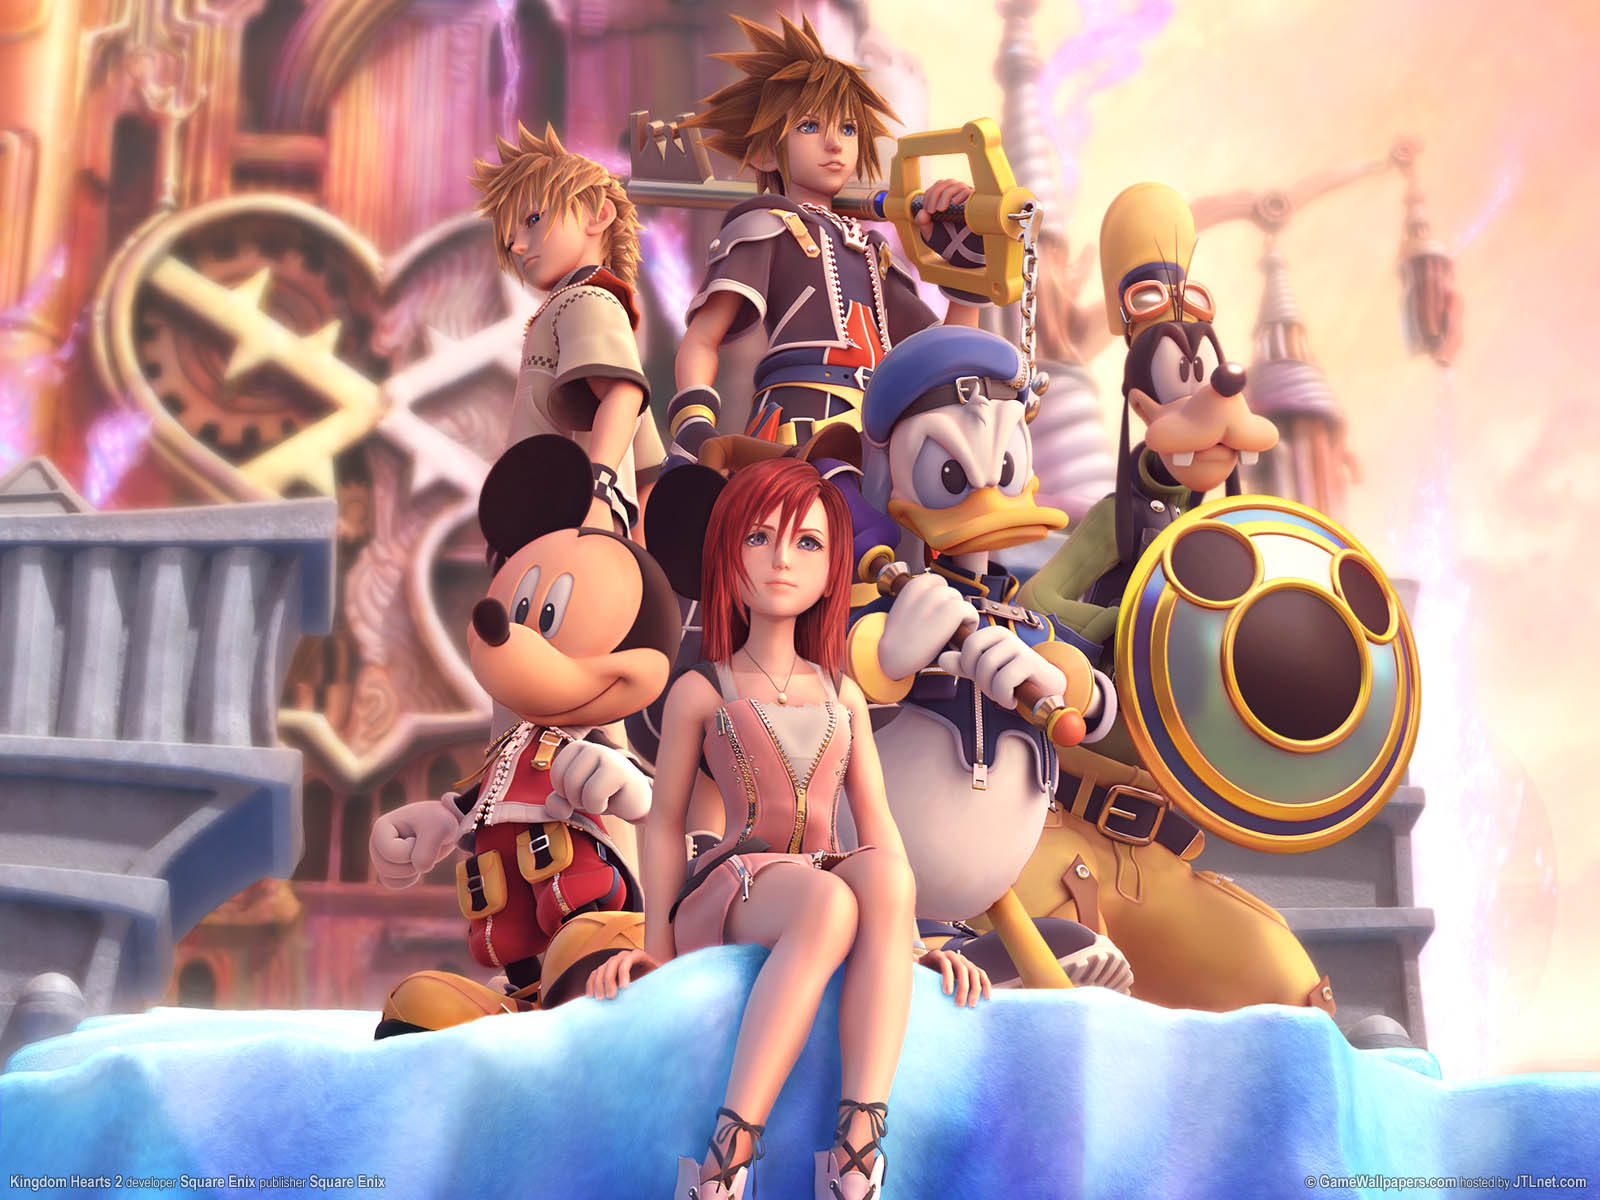 New Images From Kingdom Hearts 3D